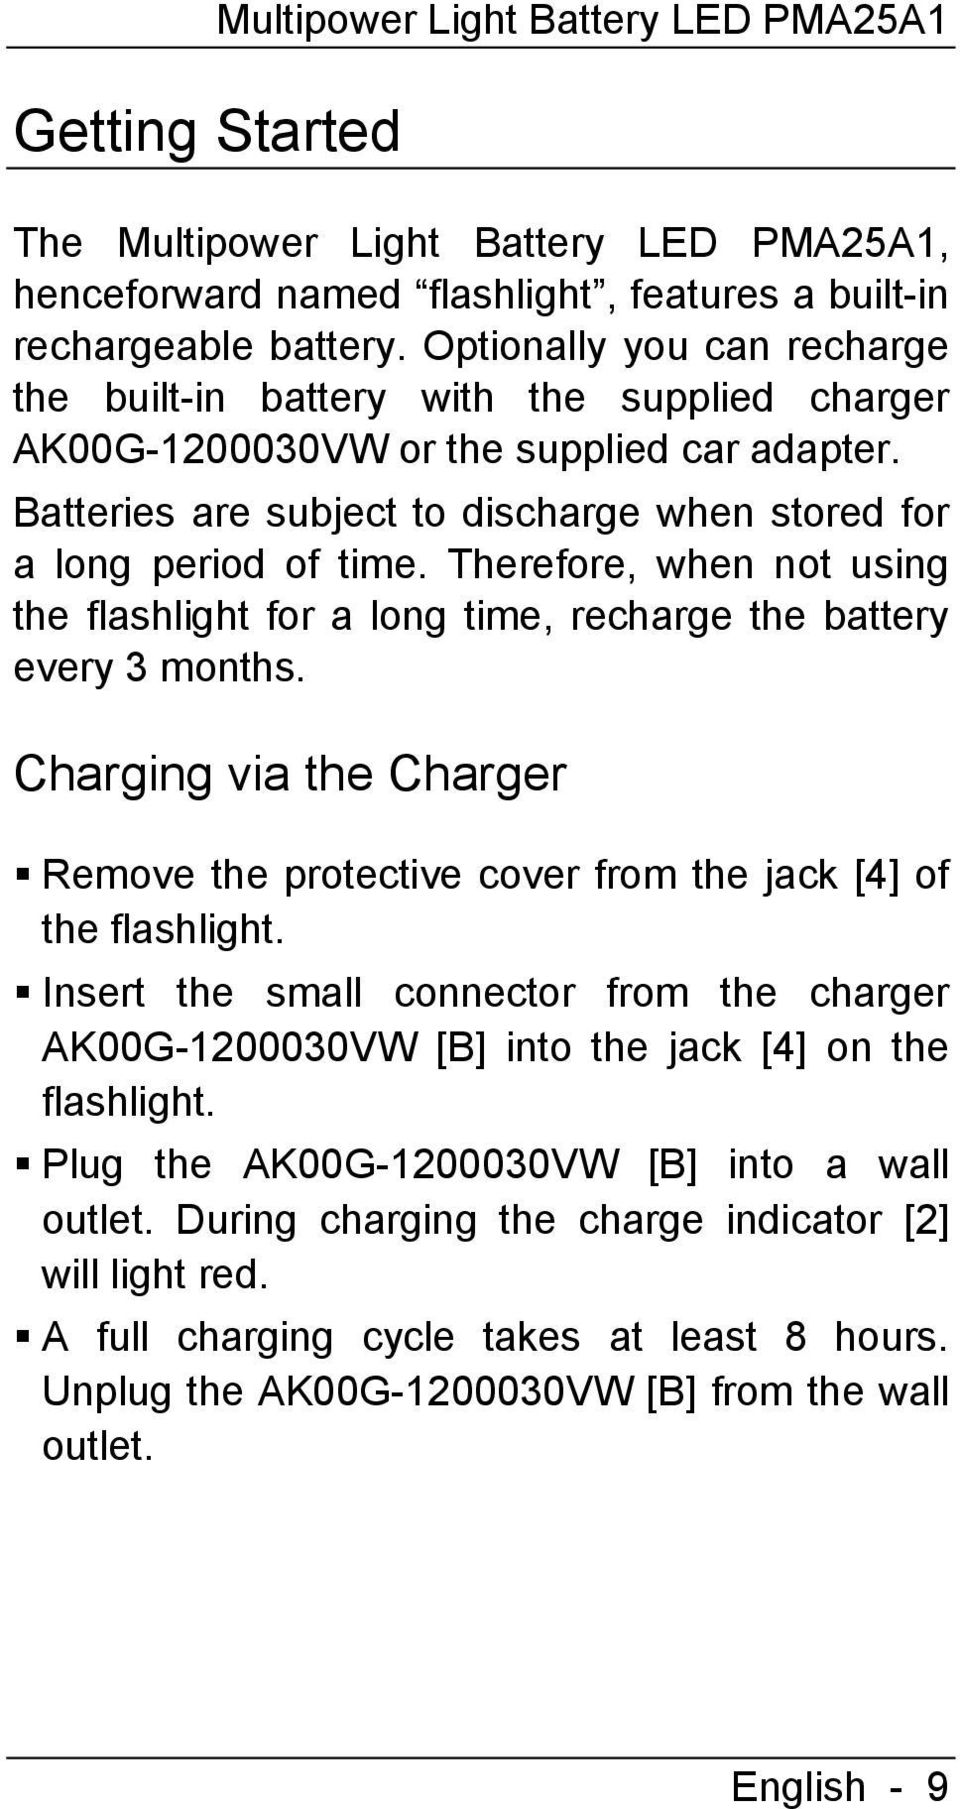 Therefore, when not using the flashlight for a long time, recharge the battery every 3 months. Charging via the Charger Remove the protective cover from the jack [4] of the flashlight.